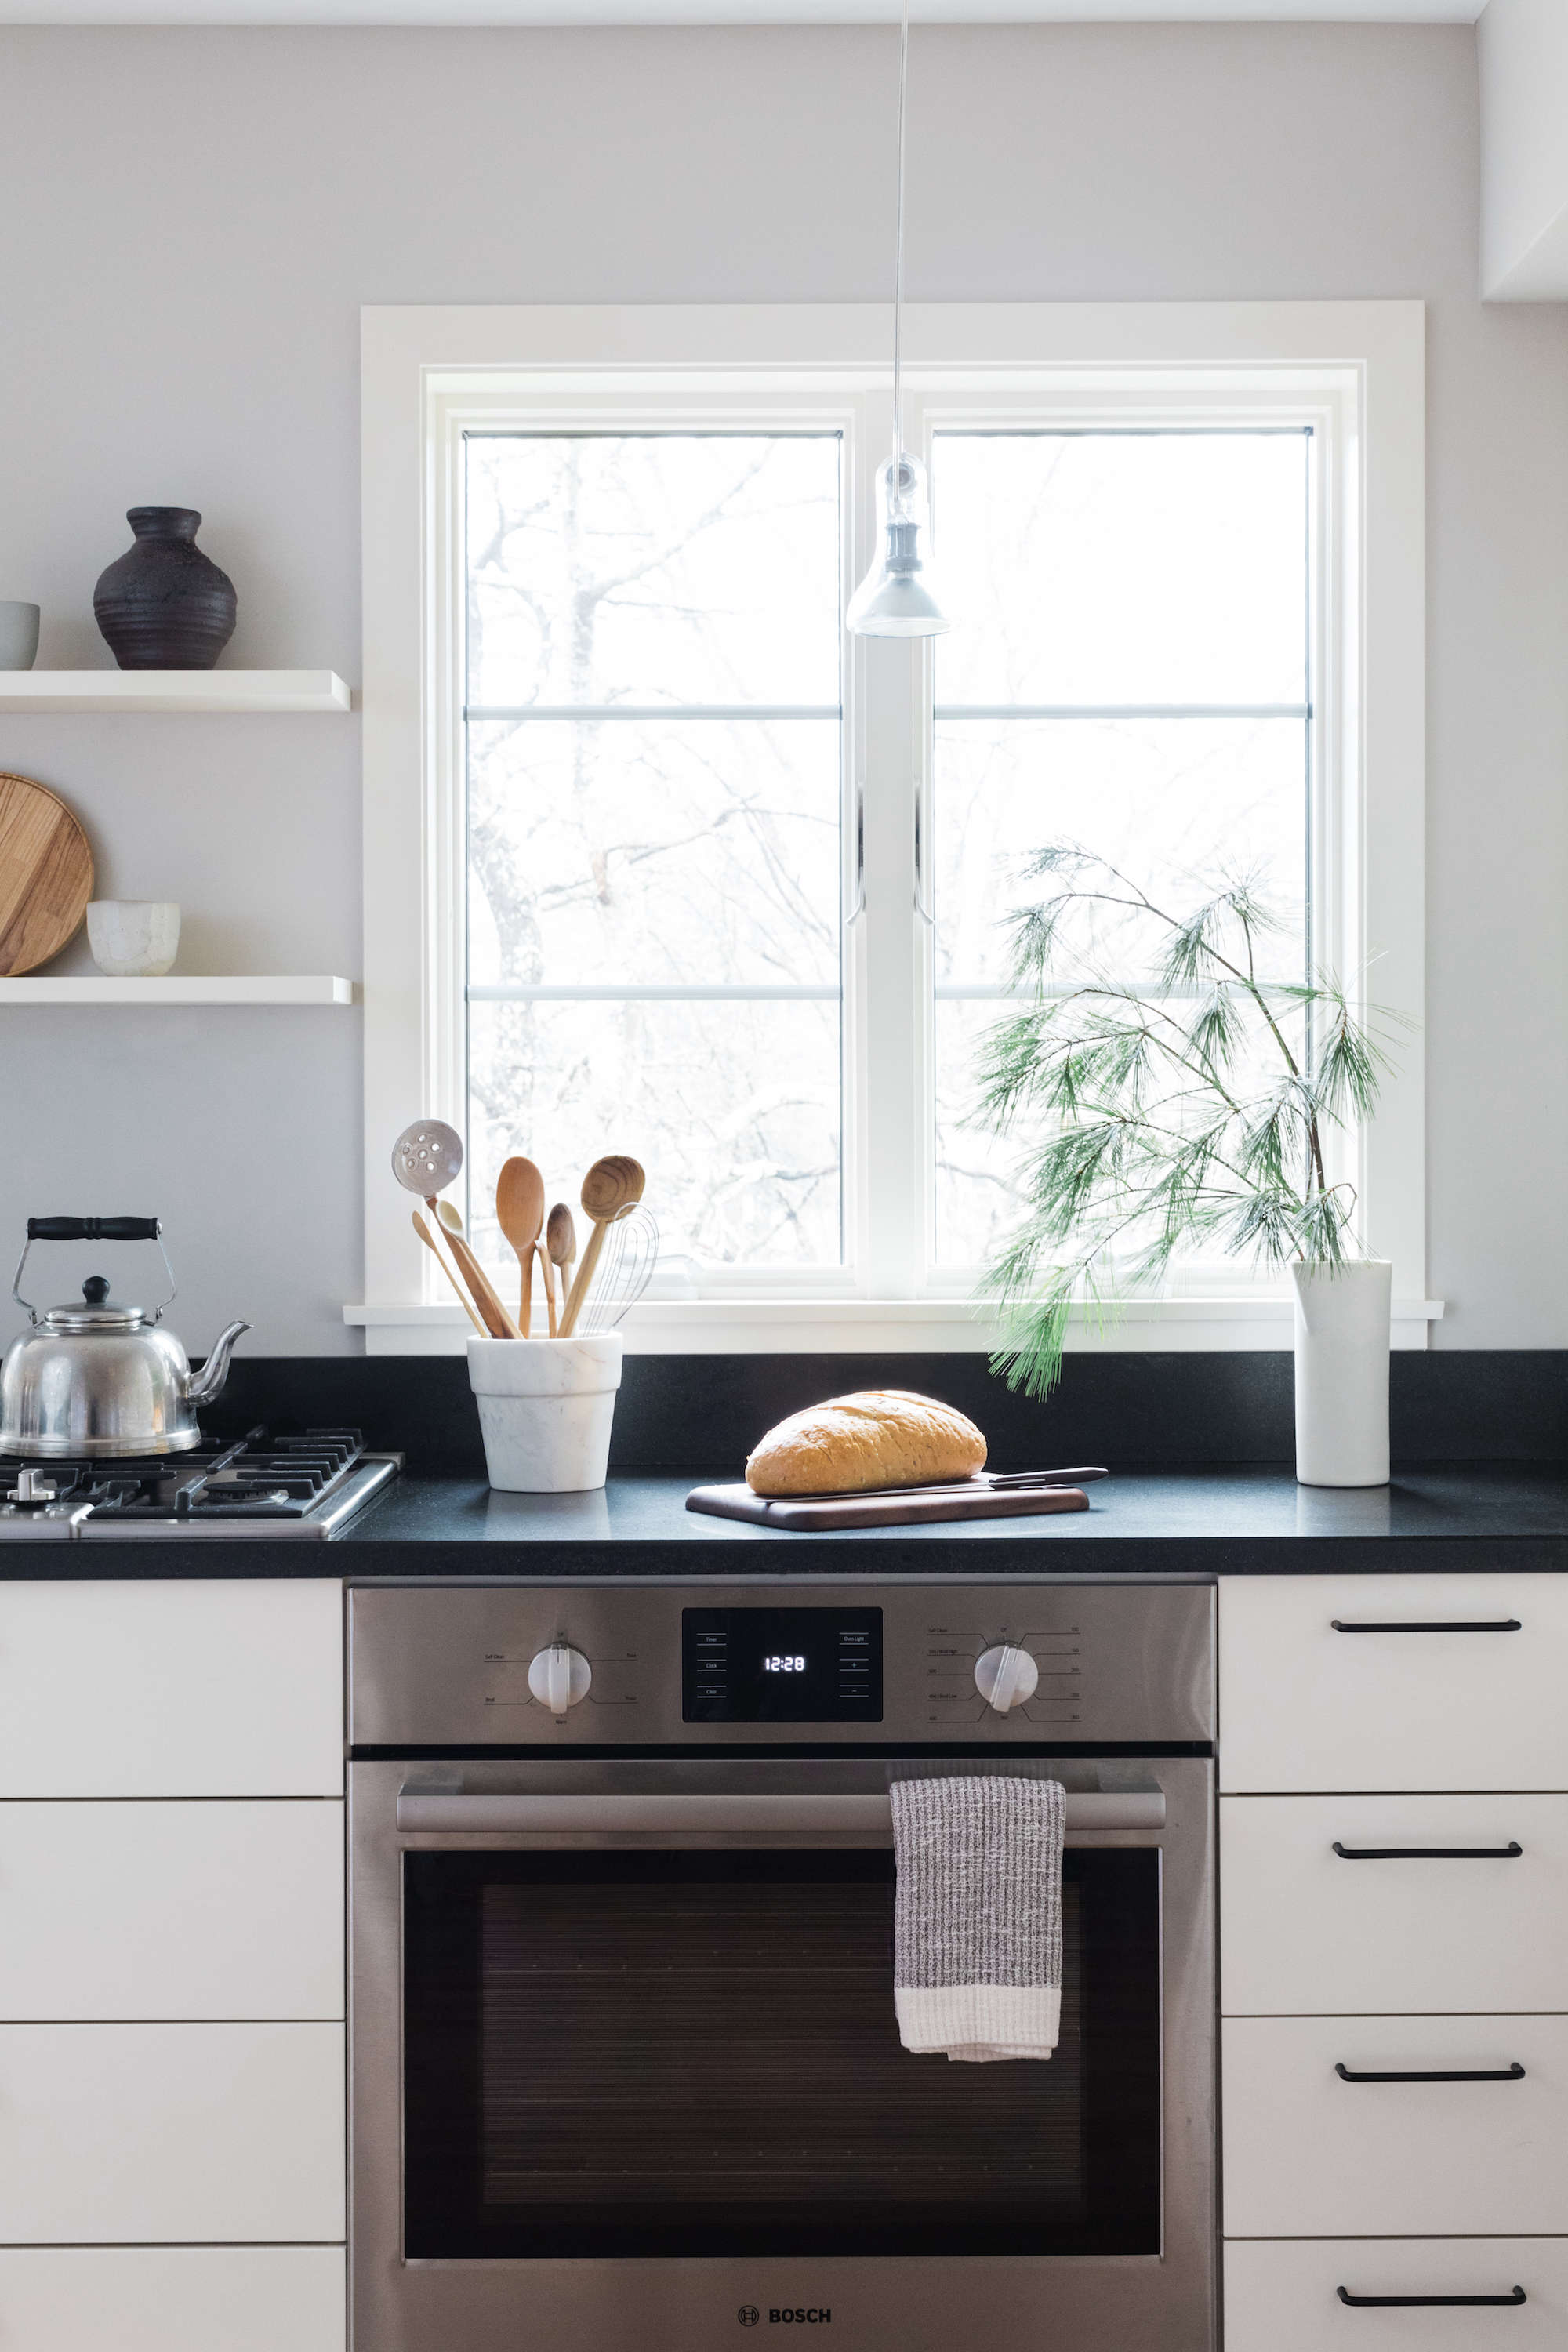 bosch kitchen roman shades a japanese inflected with home appliances remodelista inspired stove